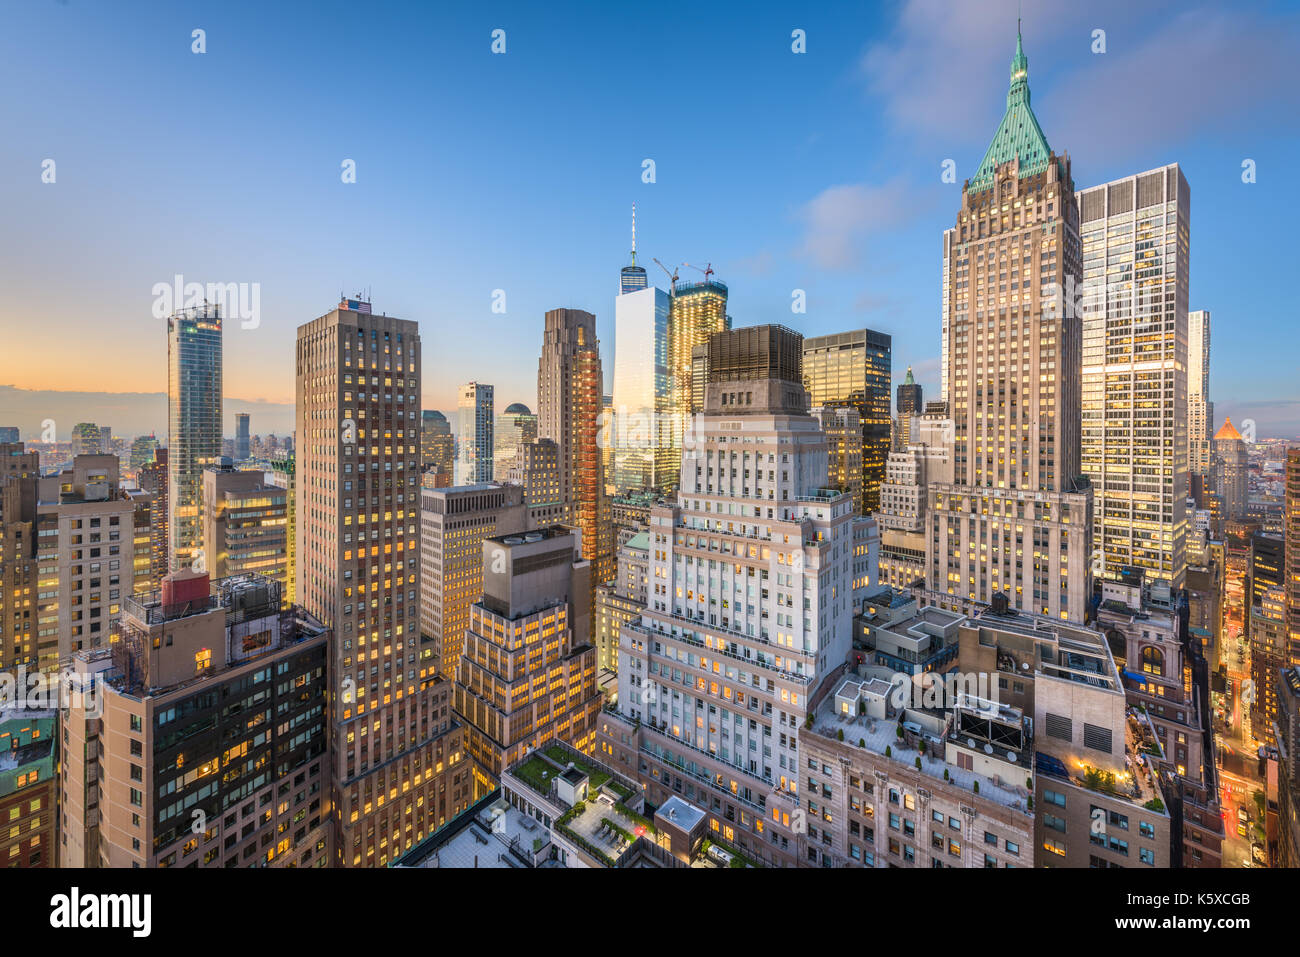 New York City financial district cityscape at twilight. - Stock Image